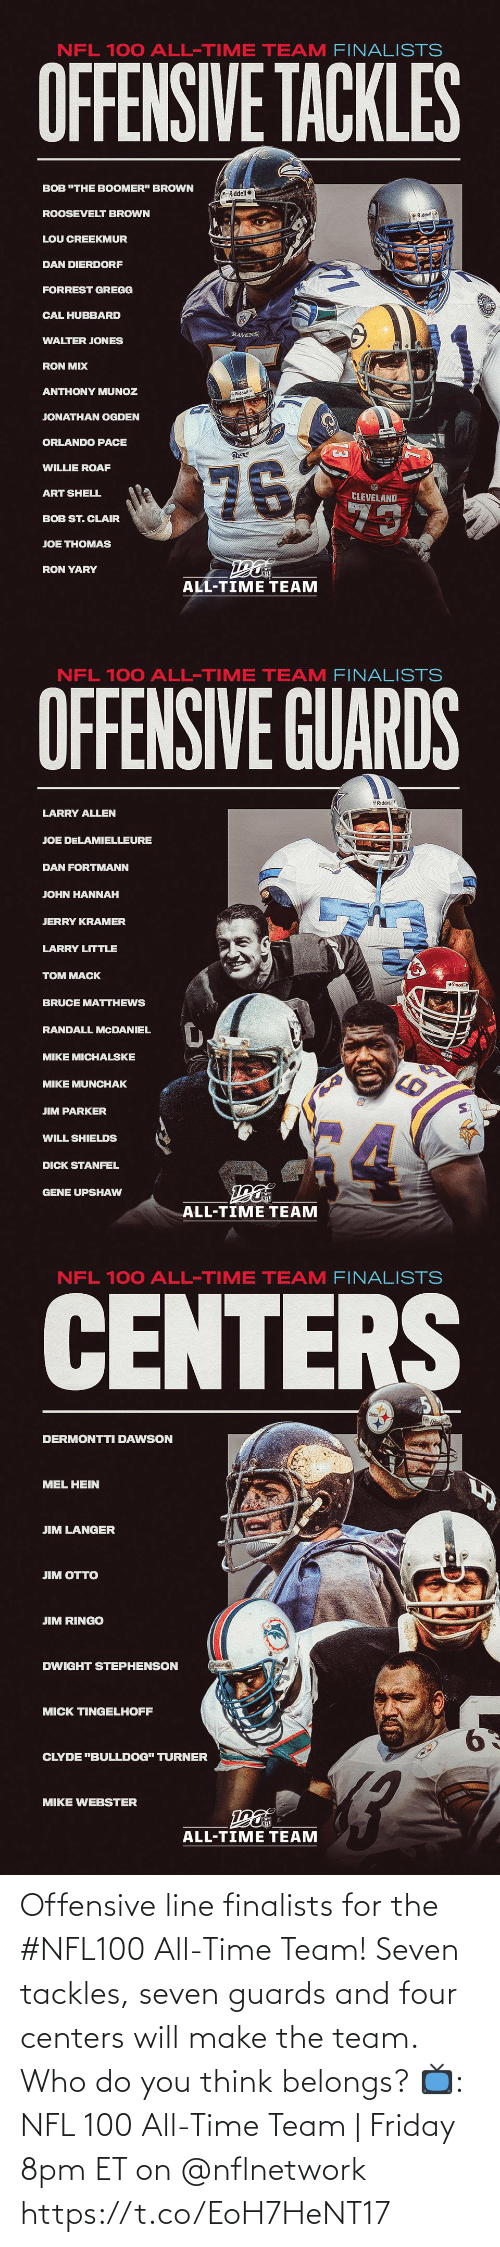 "dan: NFL 100 ALL-TIME TEAM FINALISTS  OFFENSIVE TACKLES  BOB ""THE BOOMER"" BROWN  Riddel  ROOSEVELT BROWN  O Riddell  LOU CREEKMUR  DAN DIERDORF  FORREST GREGG  CAL HUBBARD  RAVENS  WALTER JONES  RON MIX  ANTHONY MUNOZ  Riddell  JONATHAN OGDEN  ORLANDO PACE  Rams  76  WILLIE ROAF  ART SHELL  CLEVELAND  73  BOB ST. CLAIR  JOE THOMAS  RON YARY  ALL-TIME TEAM   NFL 100 ALL-TIME TEAM FINALISTS  OFFENSIVE GUARDS  Riddel  LARRY ALLEN  JOE DELAMIELLEURE  DAN FORTMANN  JOHN HANNAH  JERRY KRAMER  LARRY LITTLE  TOM MACK  BRUCE MATTHEWS  RANDALL MCDANIEL  MIKE MICHALSKE  MIKE MUNCHAK  JIM PARKER  WILL SHIELDS  DICK STANFEL  GENE UPSHAW  ALL-TIME TEAM   NFL 100 ALL-TIME TEAM FINALISTS  CENTERS  DERMONTTI DAWSON  MEL HEIN  JIM LANGER  ЛM OТTO  JIM RINGO  DWIGHT STEPHENSON  MICK TINGELHOFF  9.  CLYDE ""BULLDOG"" TURNER  MIKE WEBSTER  ALL-TIME TEAM Offensive line finalists for the #NFL100 All-Time Team!  Seven tackles, seven guards and four centers will make the team. Who do you think belongs?  📺: NFL 100 All-Time Team 